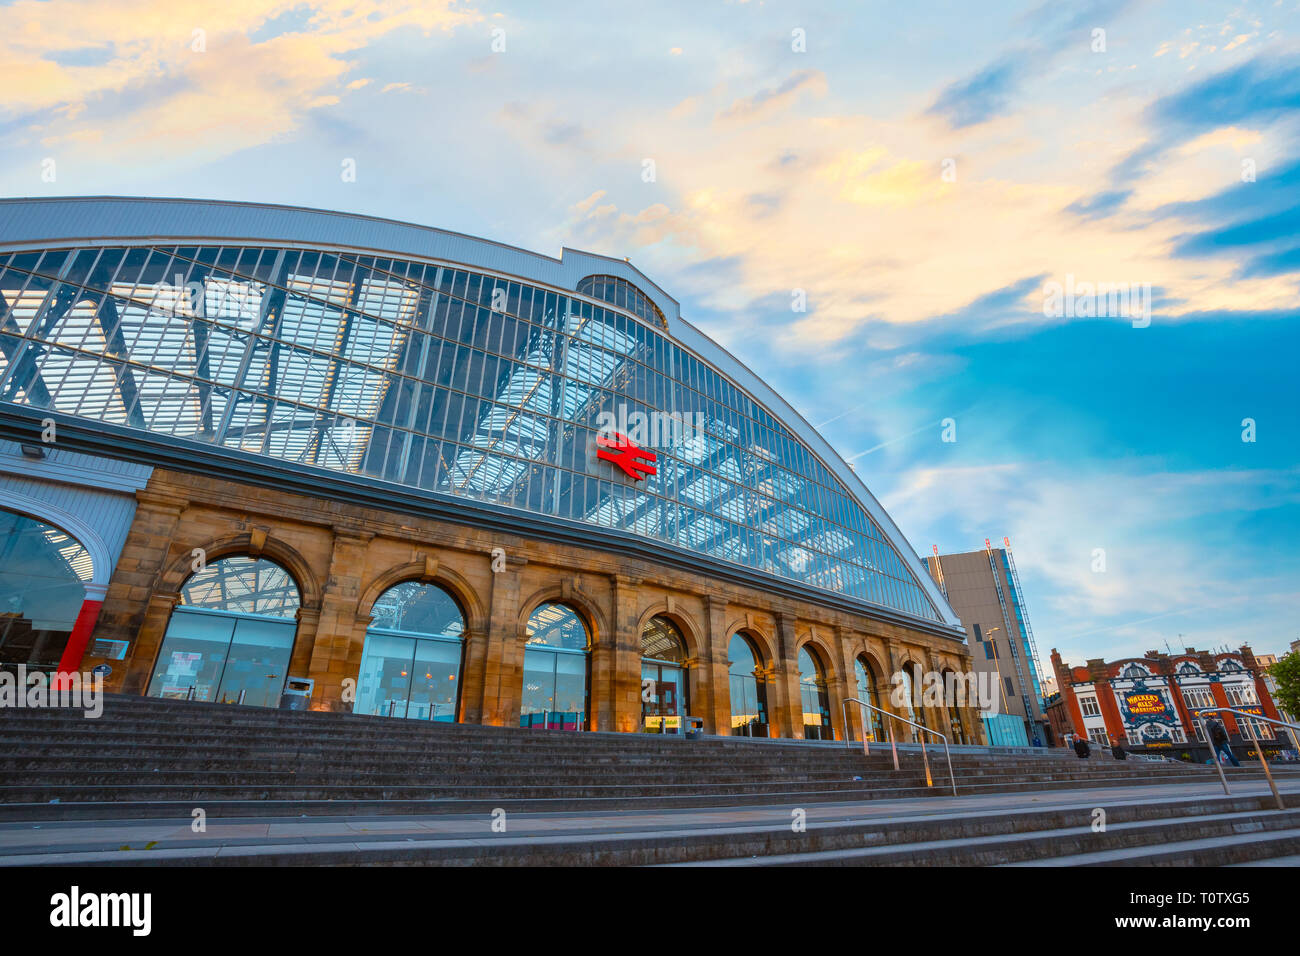 Liverpool, UK - May 18 2018:Liverpool Lime Street is a terminus railway station serves the city centre, opened in August 1836, it's the oldest grand t - Stock Image